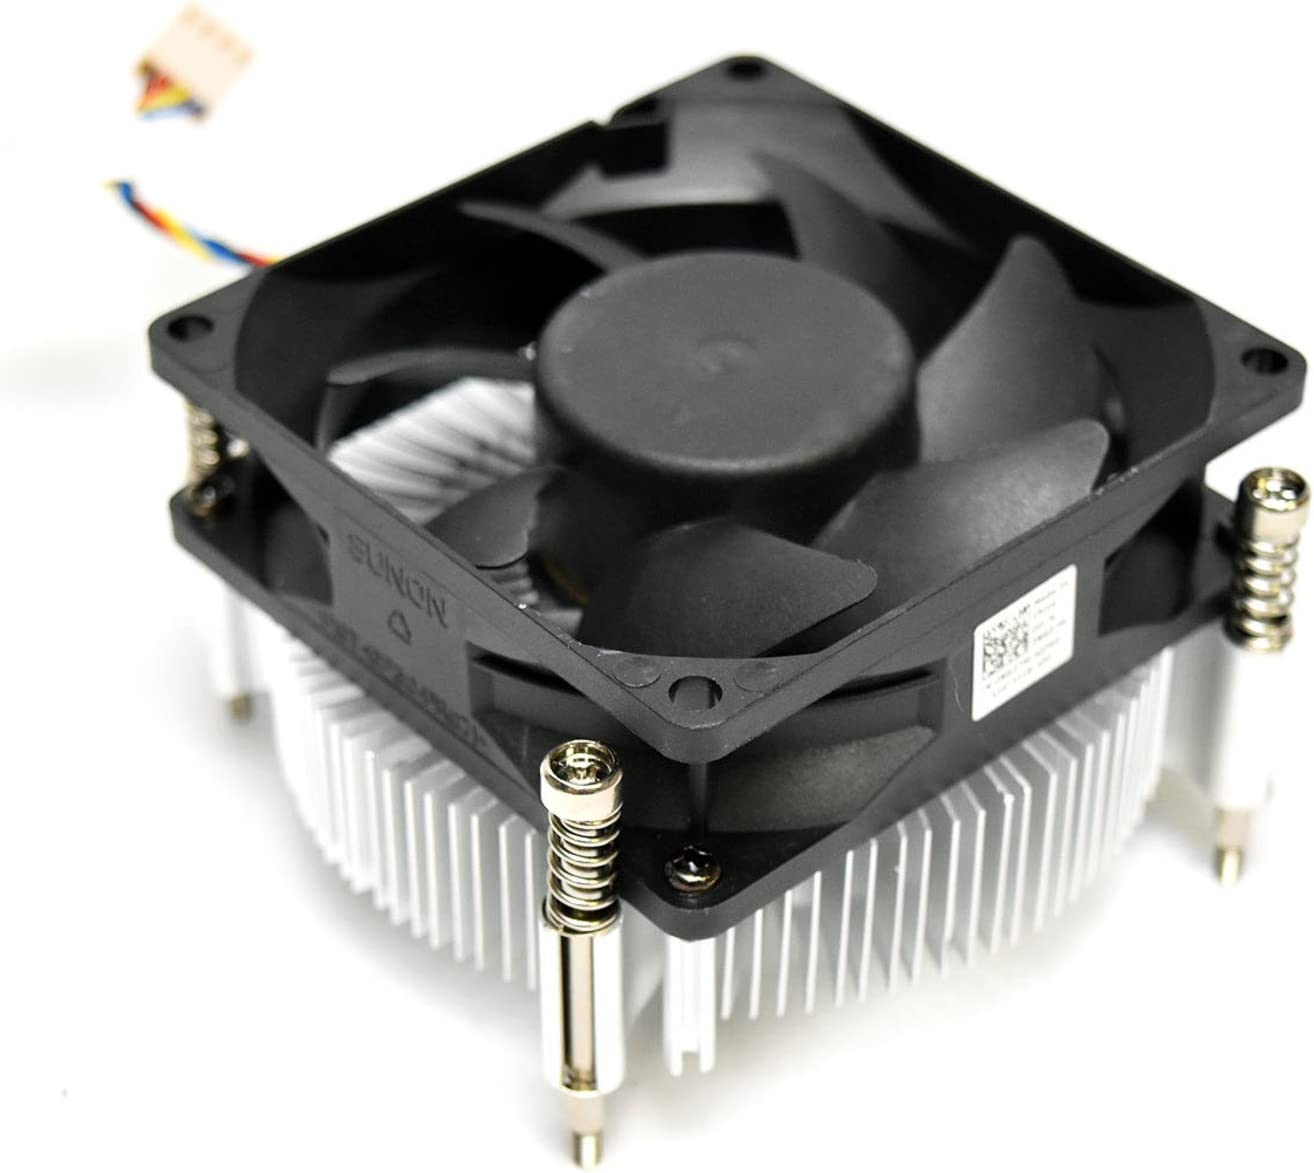 Dell OEM Inspiron 3650 Desktop CPU Heatsink and Fan Assembly XG27M CJ53G